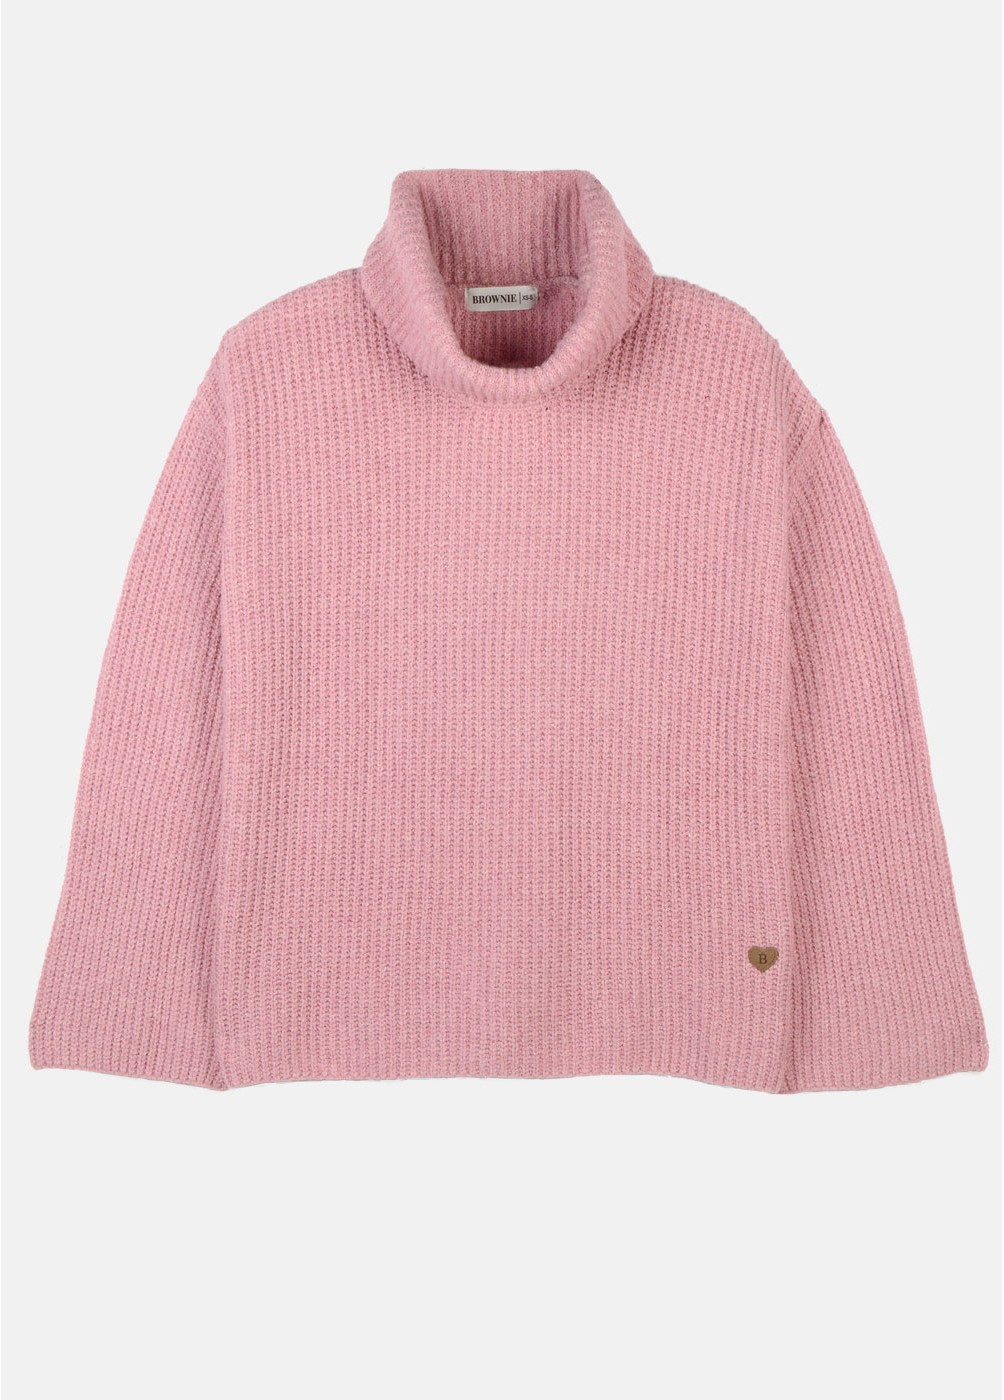 MARNI HIGH NECK FLARED SLEEVE SWEATER